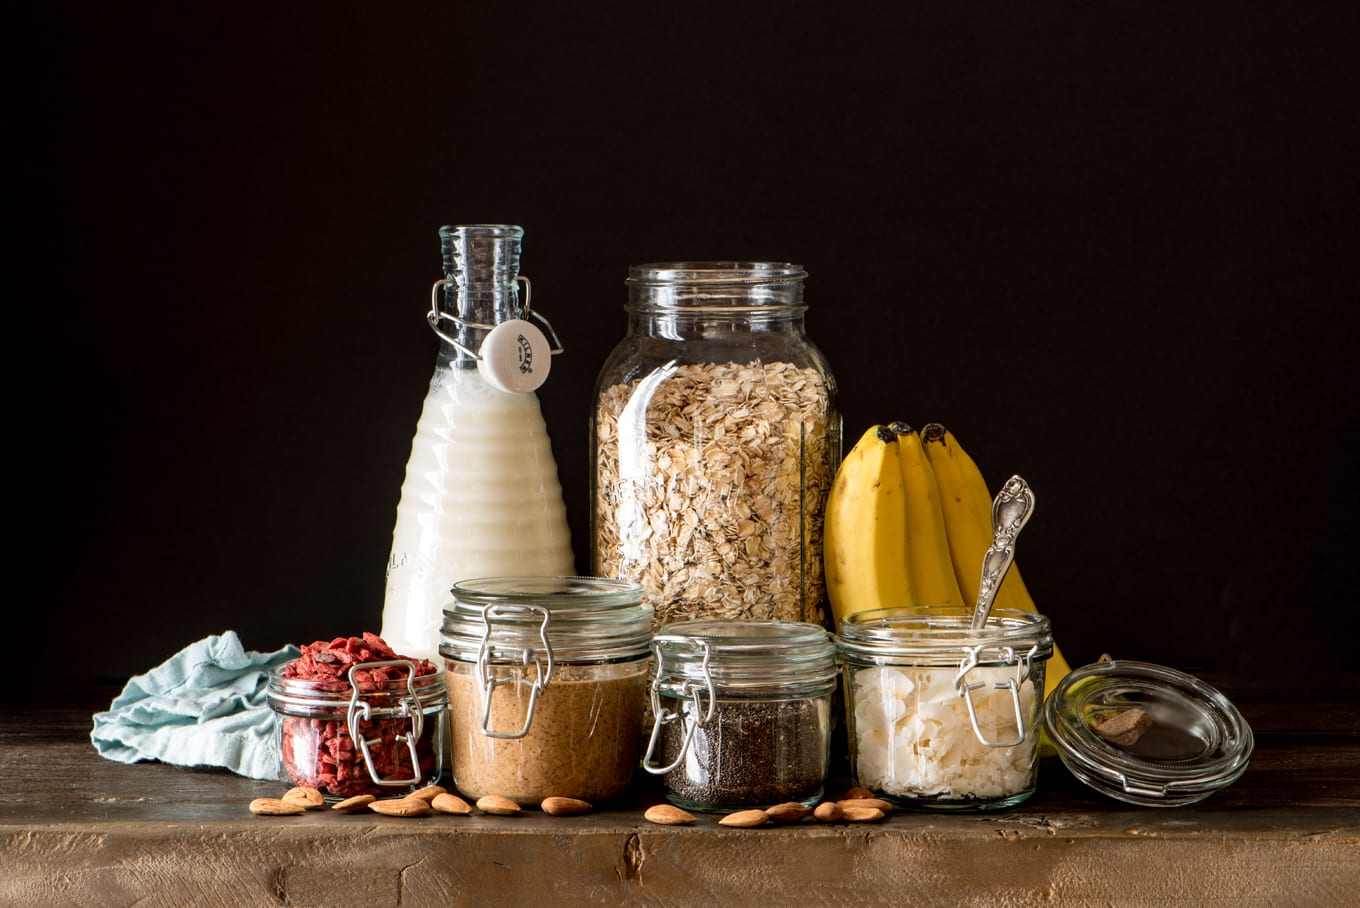 recipe ingredients in jars